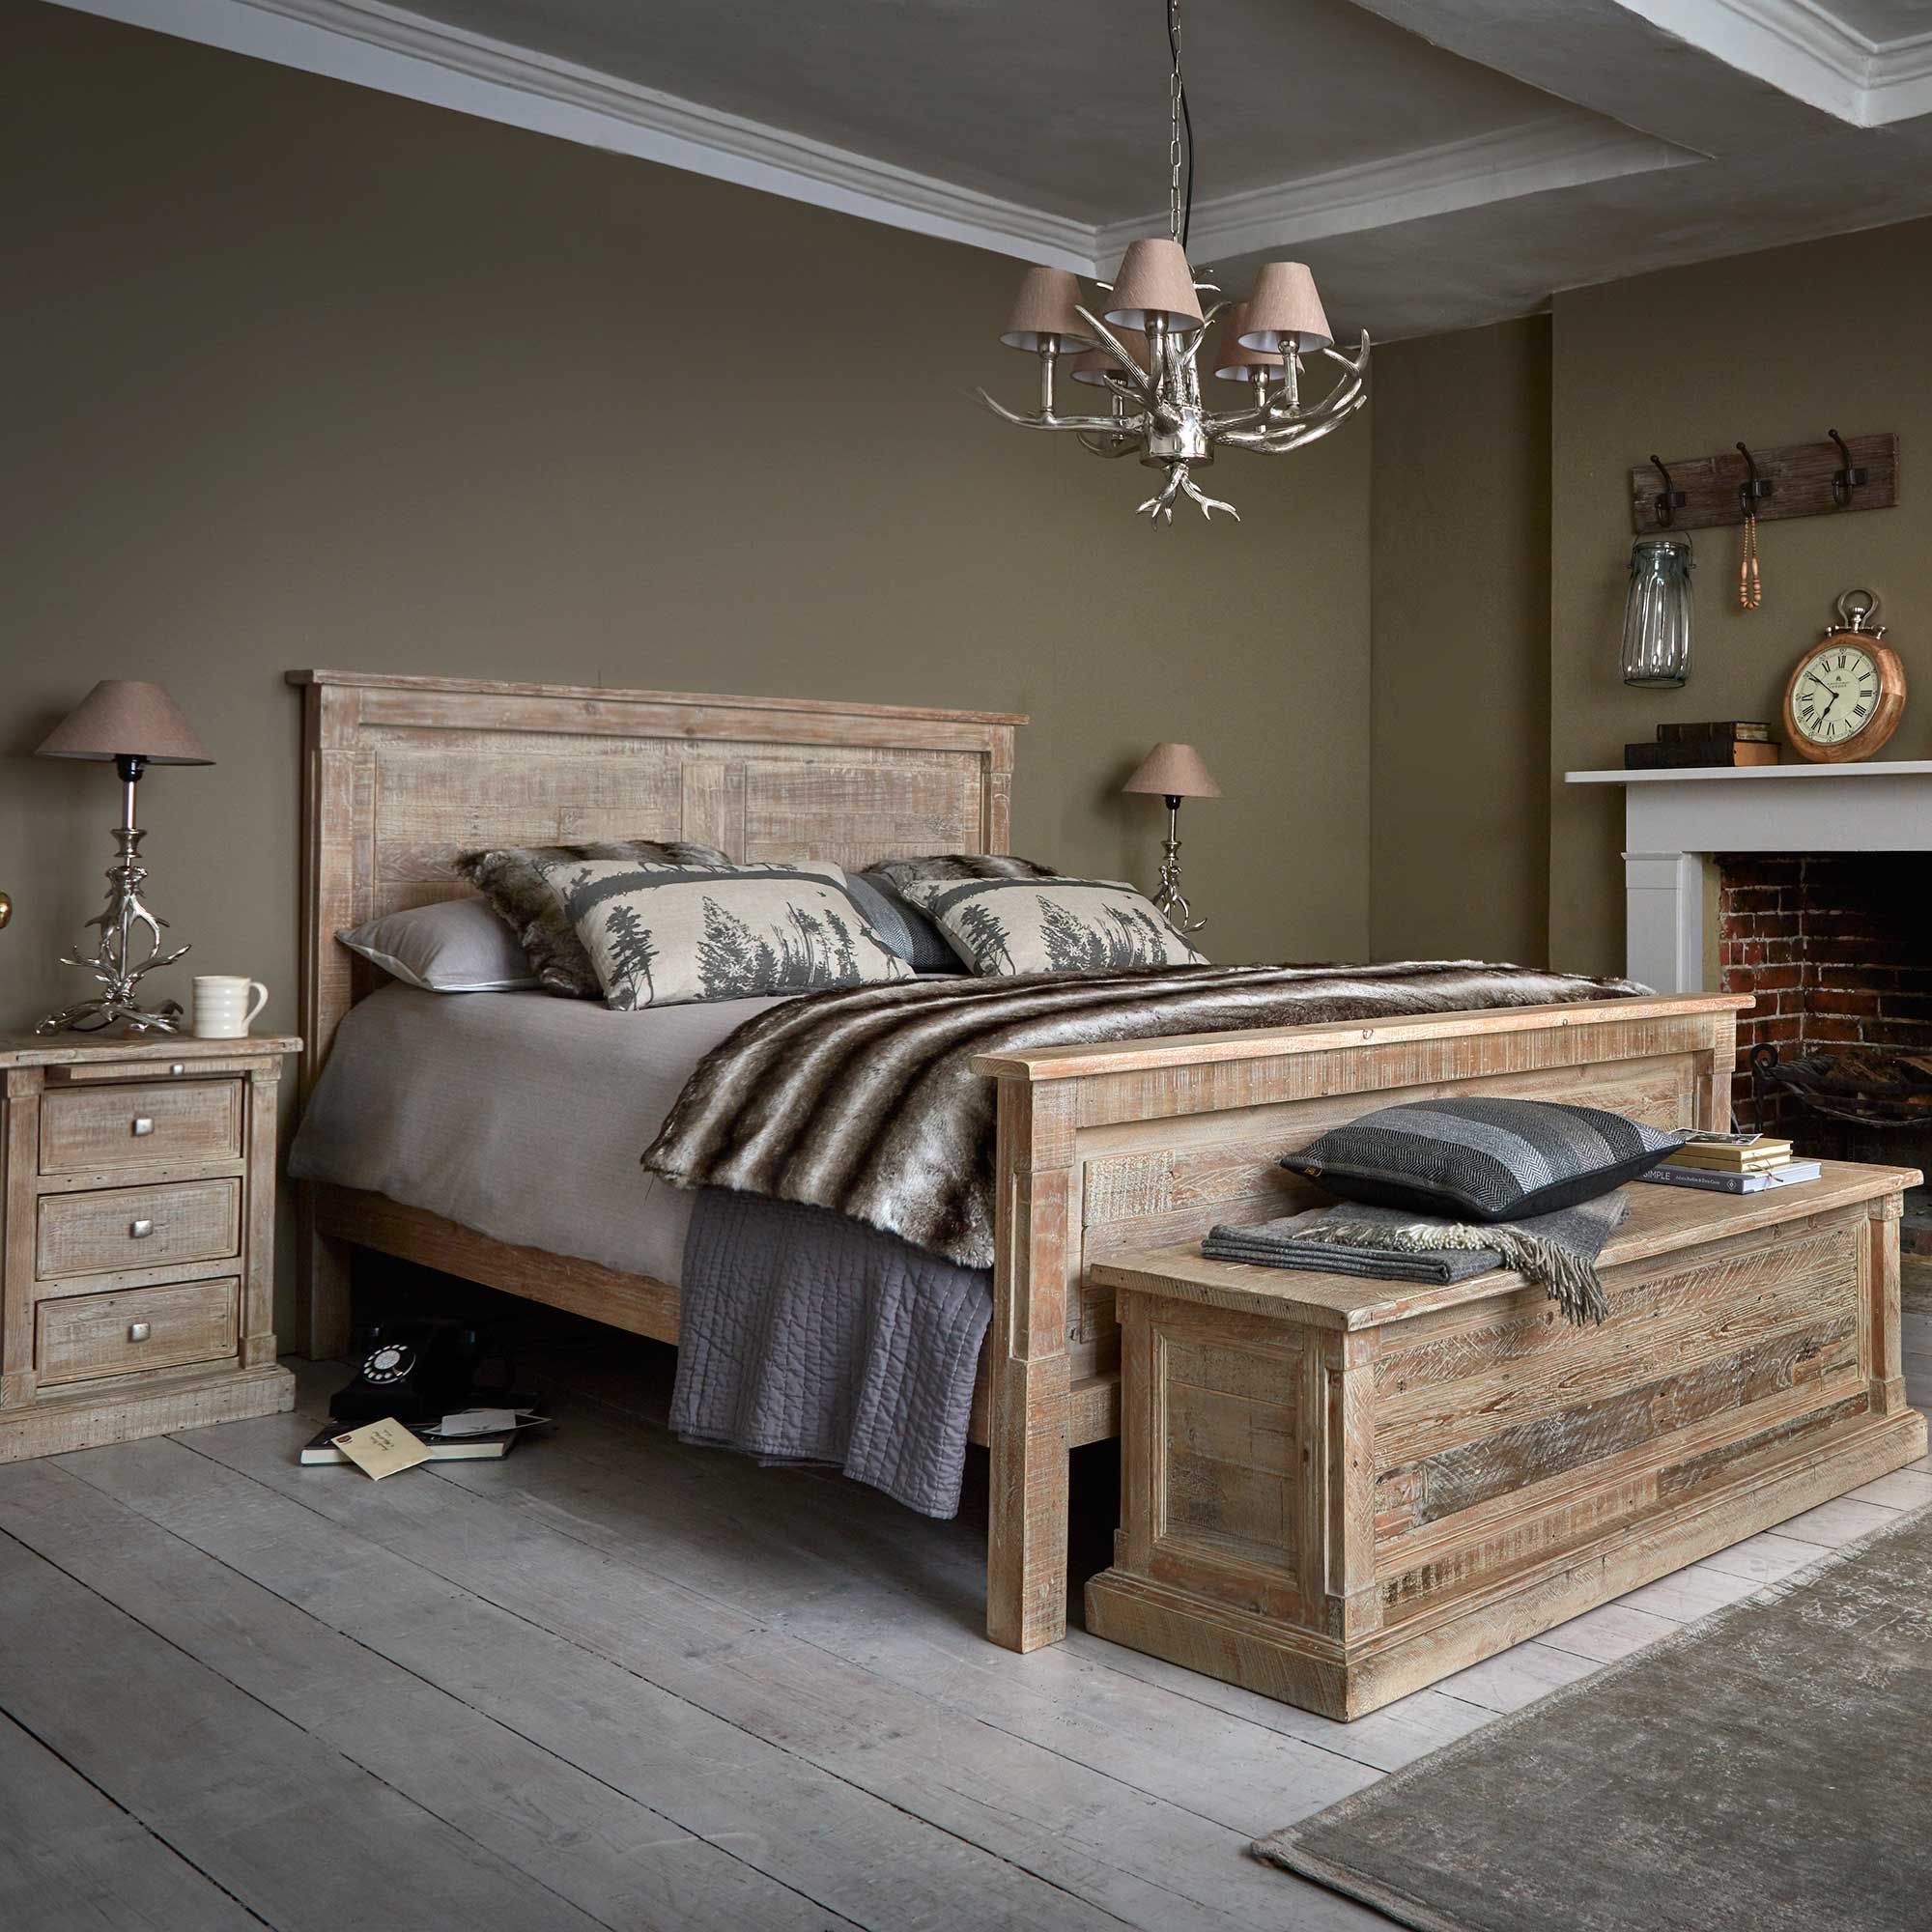 The Austen Bedroom Furniture Range Has A Nautical Rustic Feel With